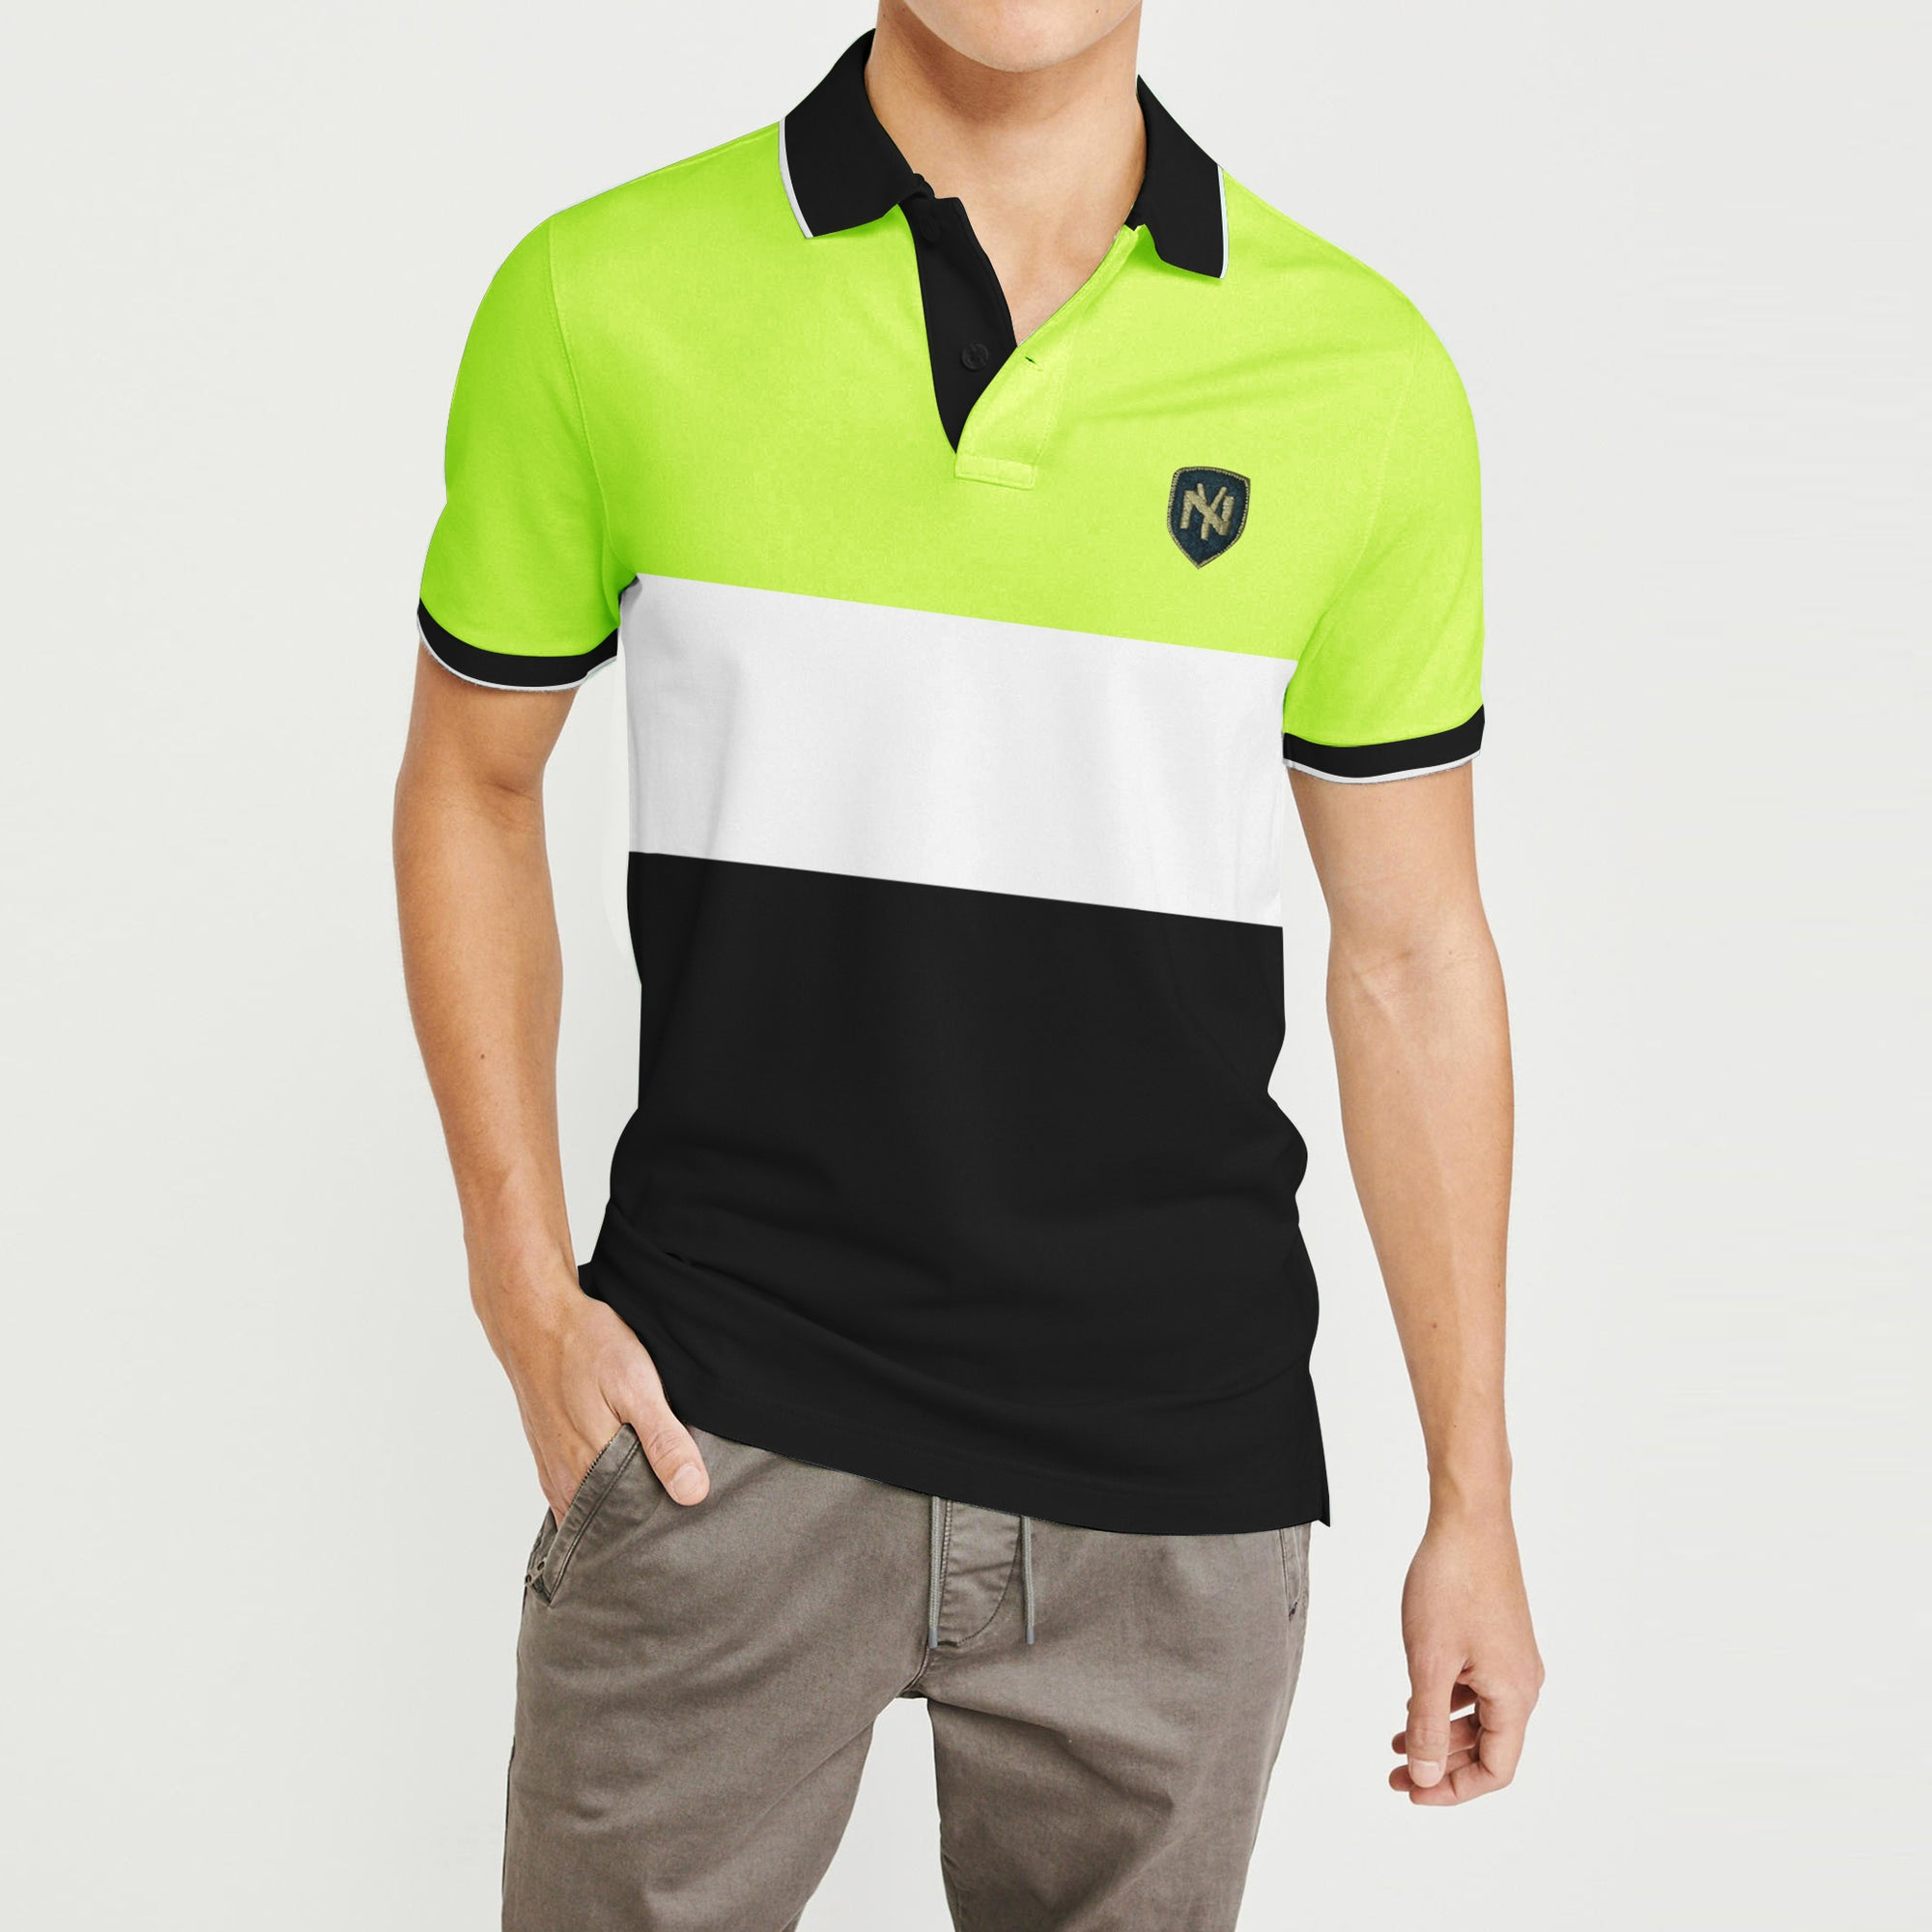 0ba8ae388bf Outfitters Short Sleeve P.Q Polo Shirt For Men-Striped-BE8318 - BrandsEgo